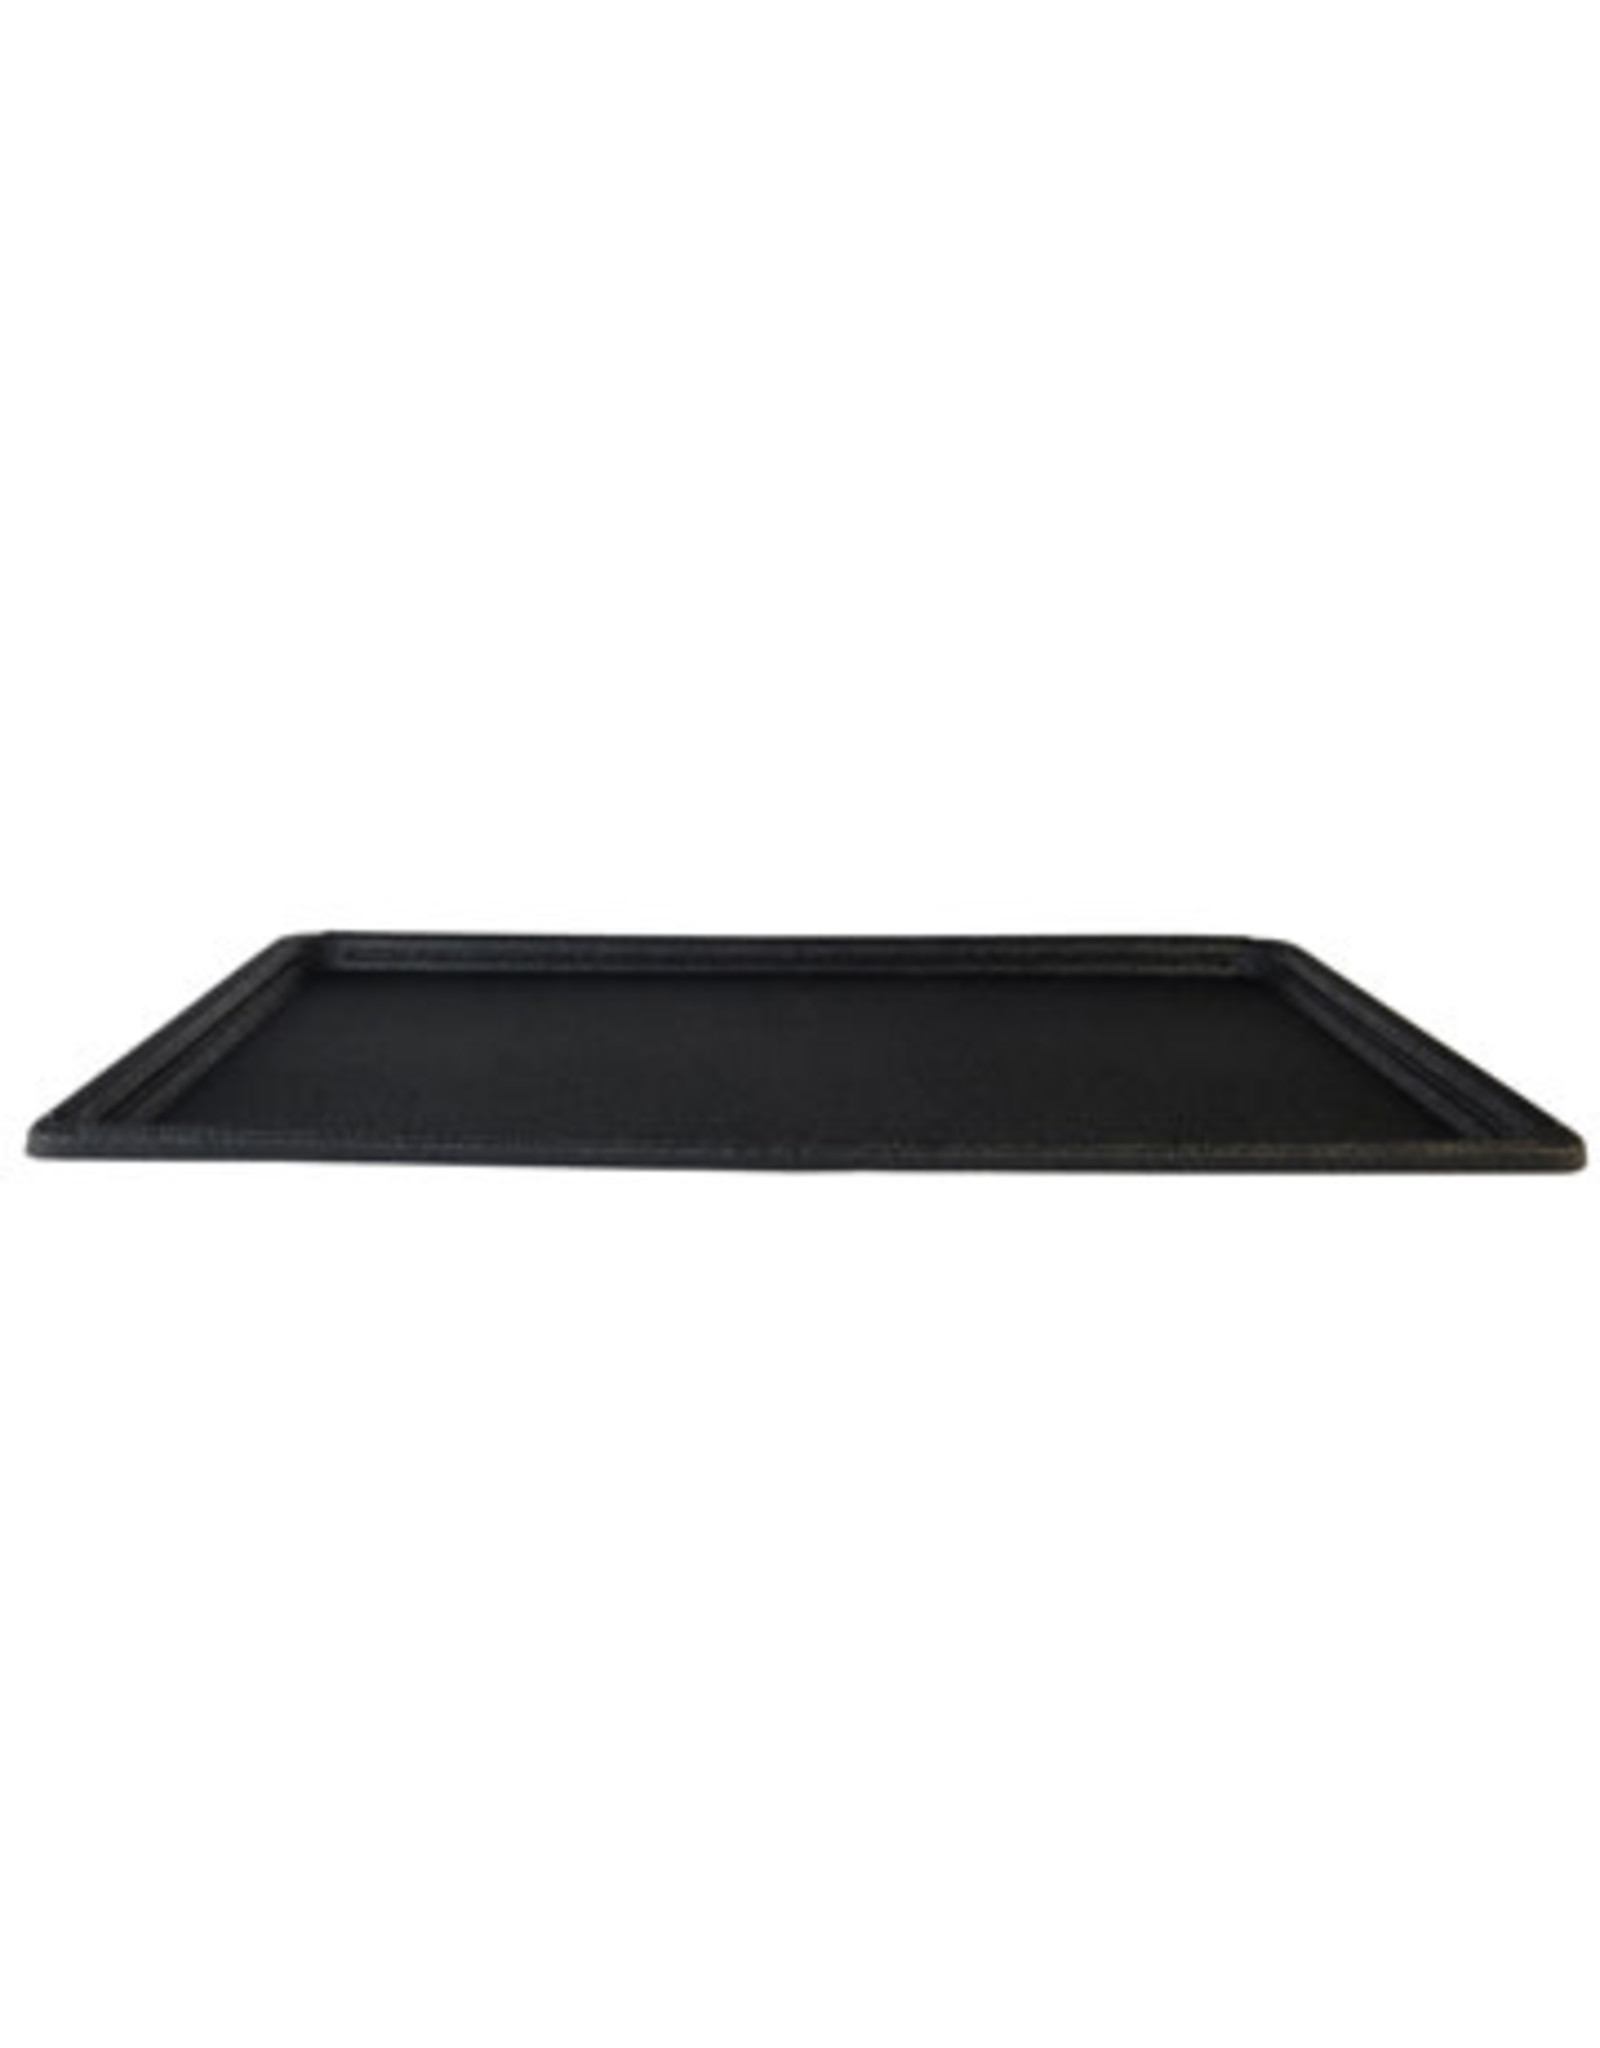 DogIt Dog Crate Replacement Tray M for 90563